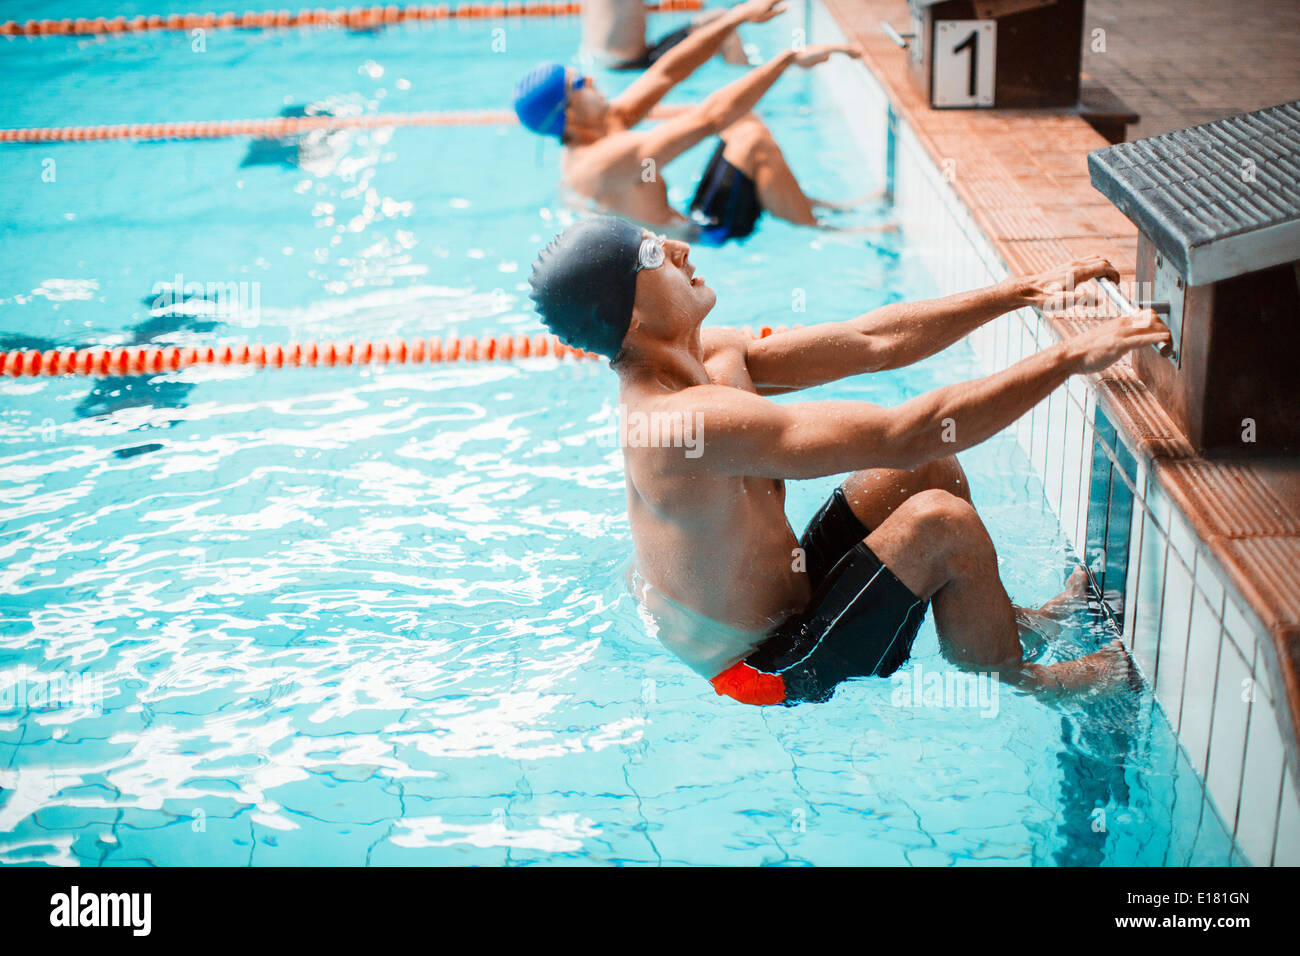 Swimmers poised at starting block in pool - Stock Image